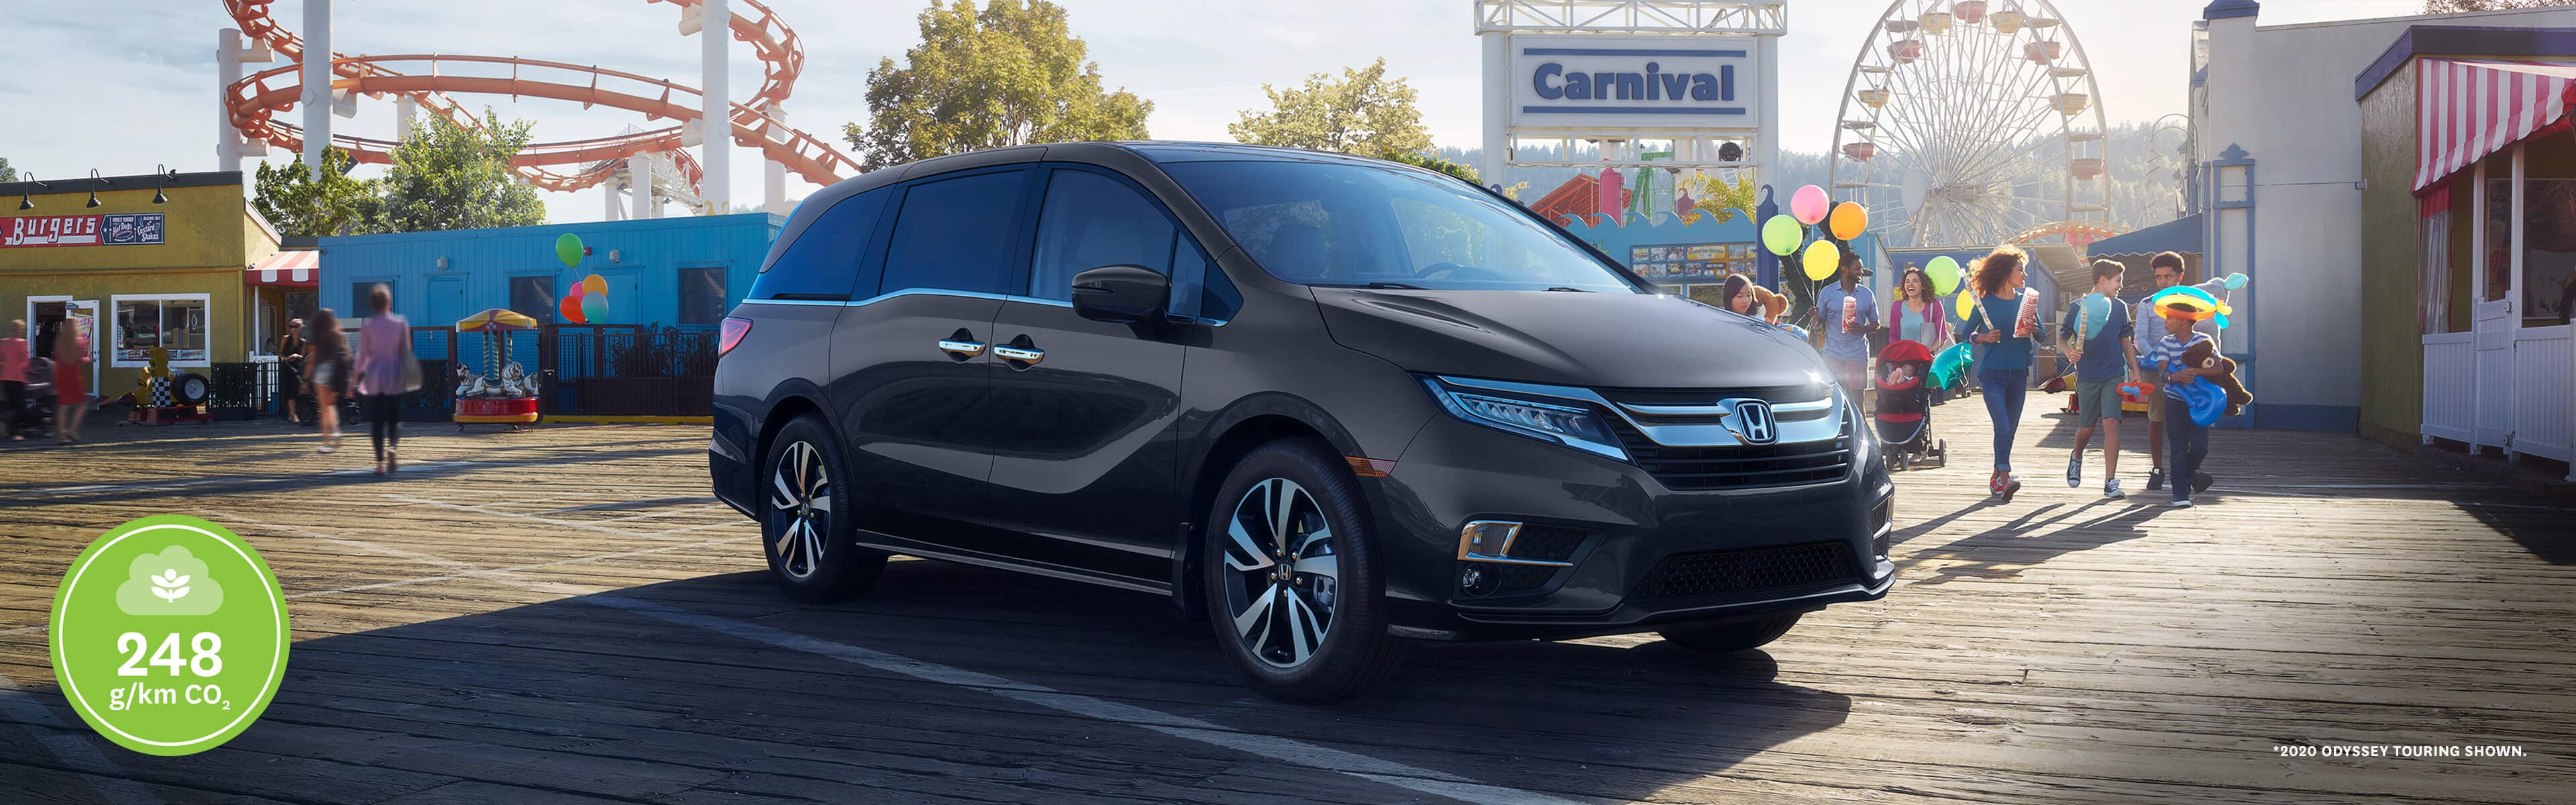 2020 Honda Odyssey parked on a boardwalk in front of a carnival